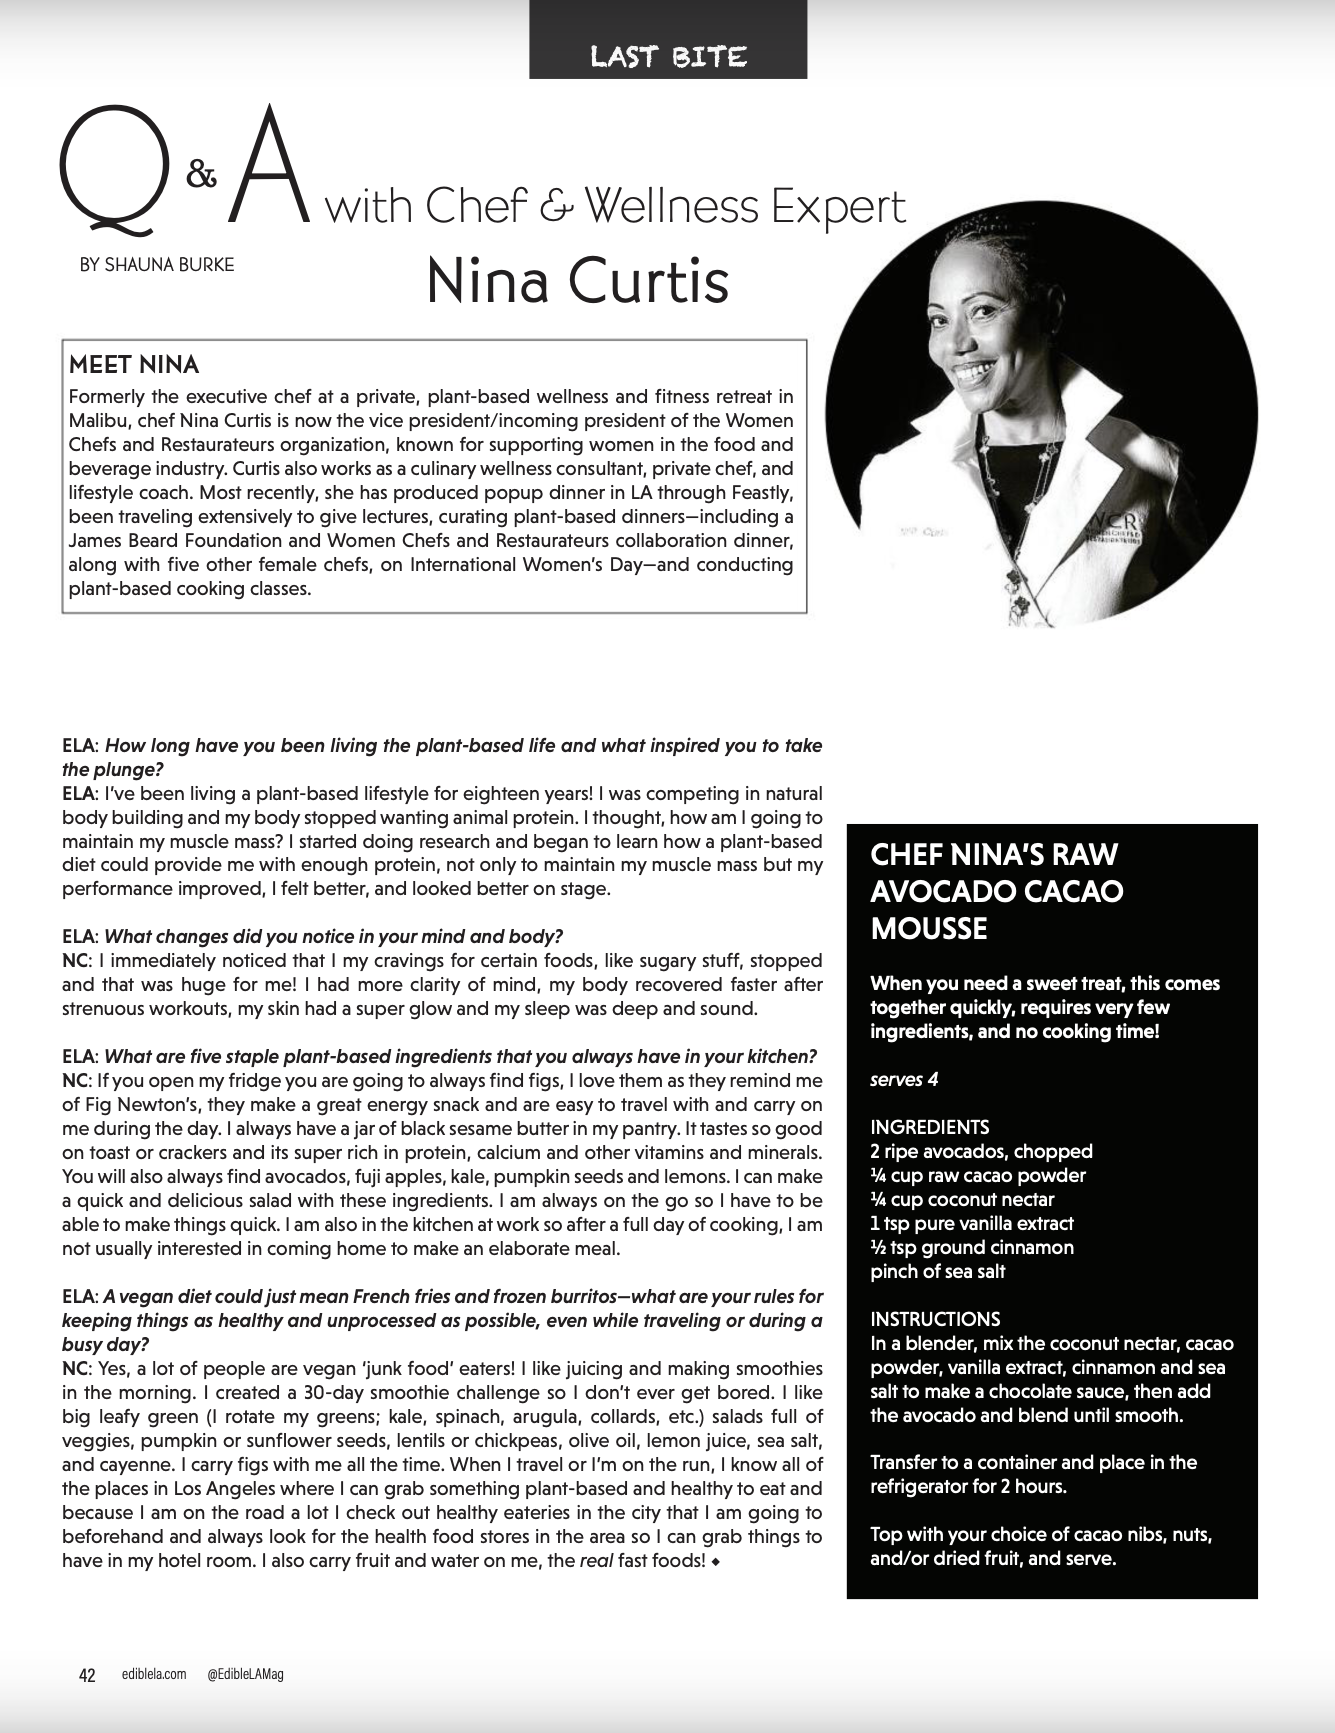 Q&A with Chef Nina Curtis